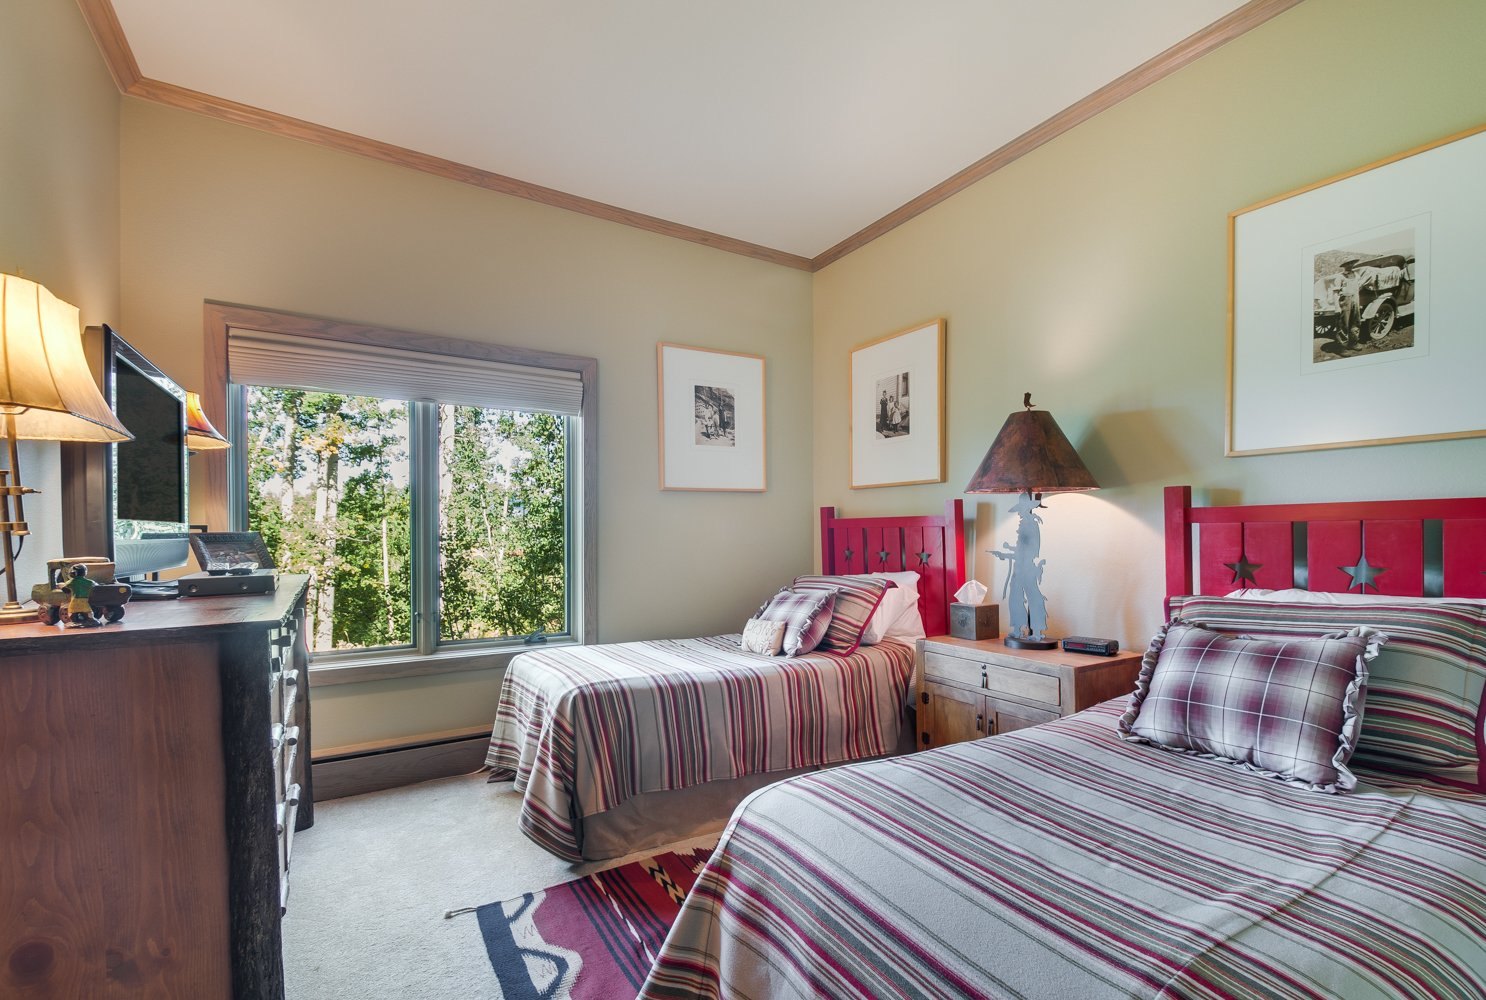 Bedroom with two twin beds with red headboards